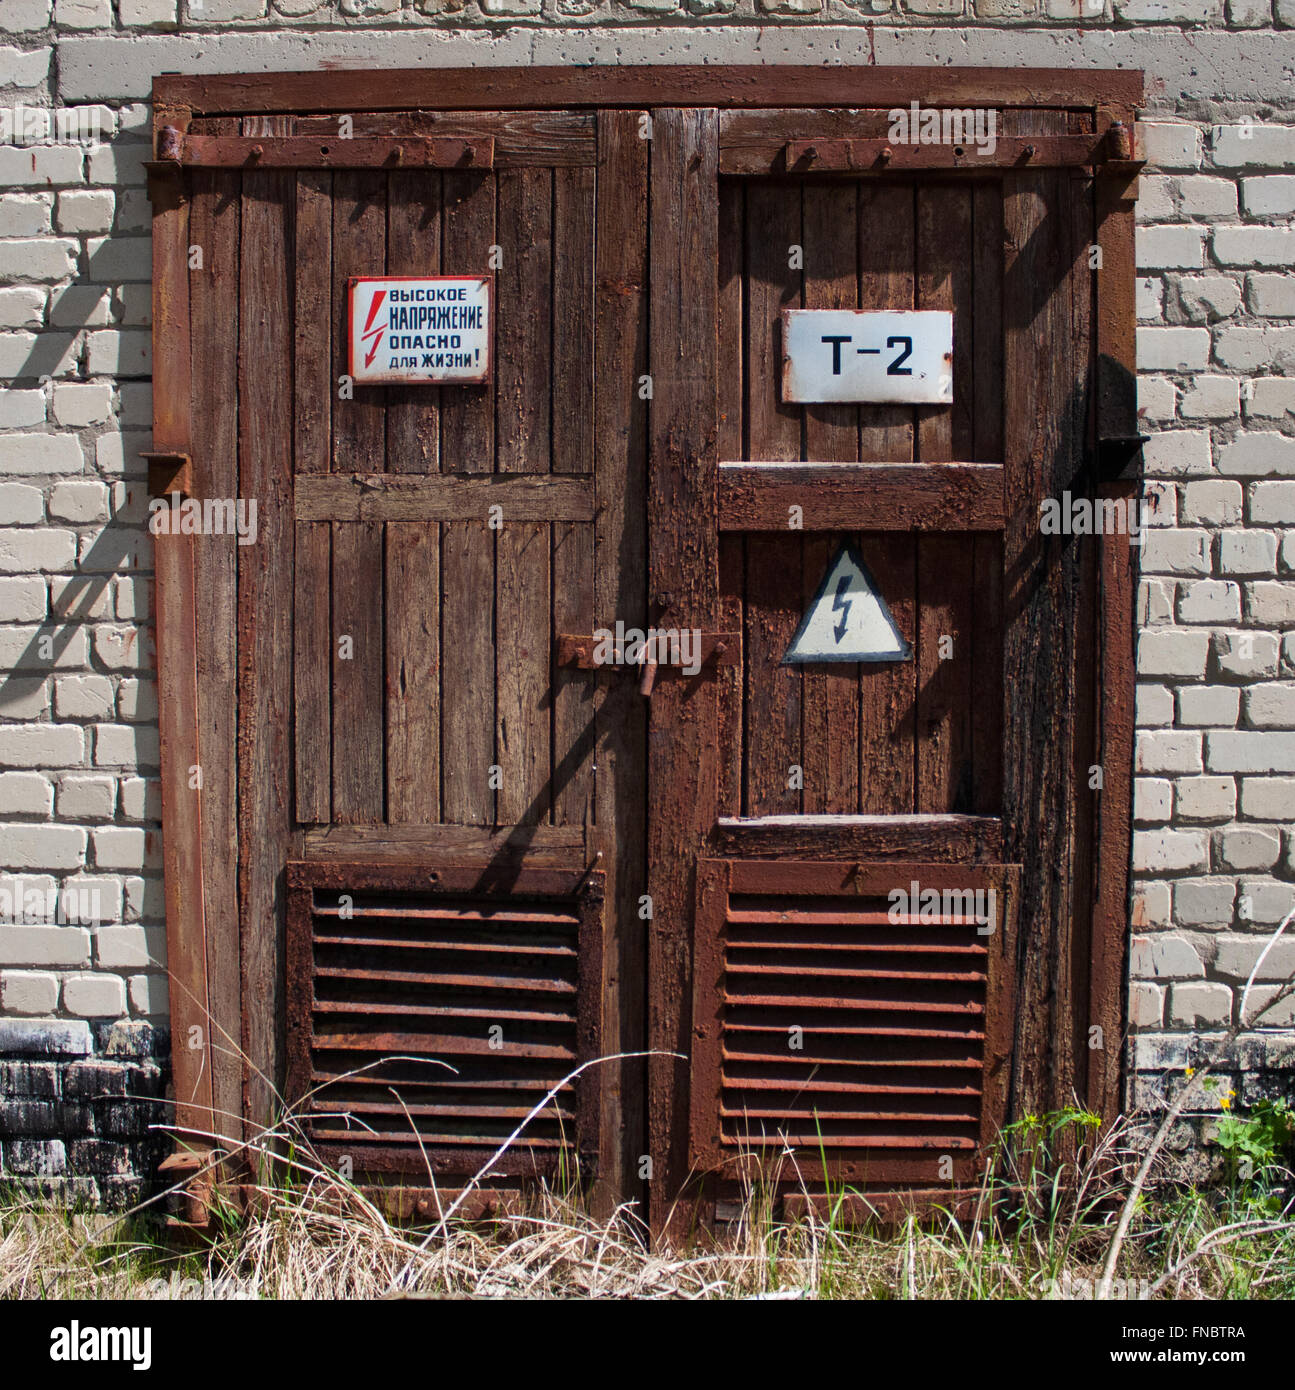 Old doors in Chernobyl secluded area - Stock Image